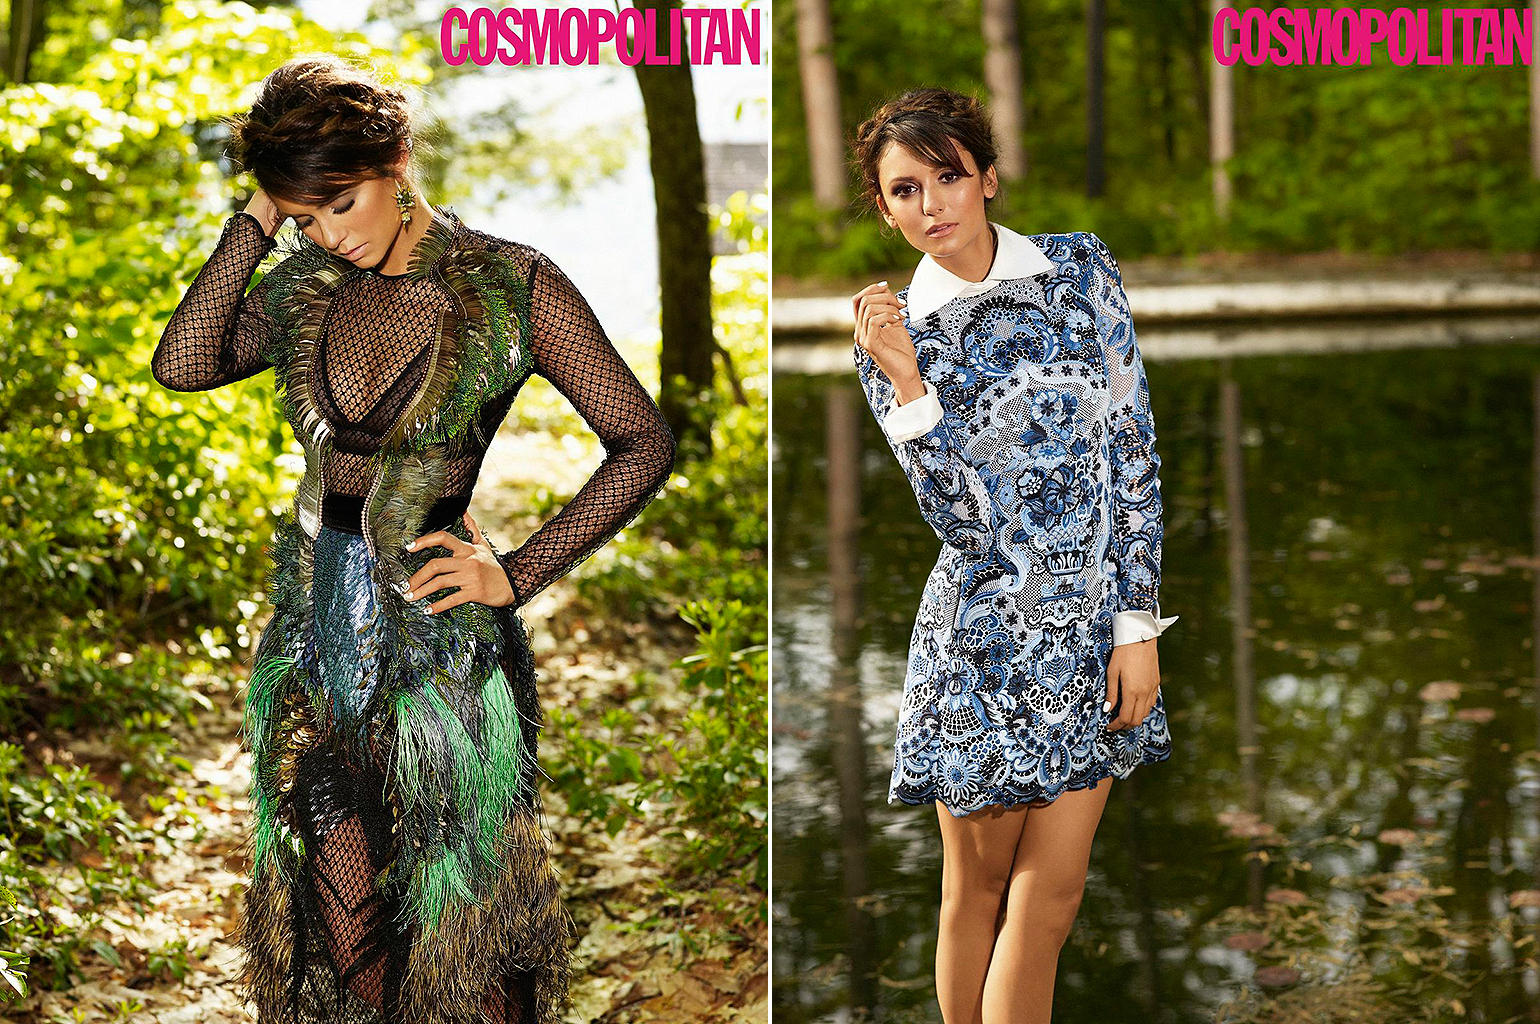 An inside look at Nina Dobrev's photo shoot for Cosmopolitan (Matthias Vriens-McGrath)